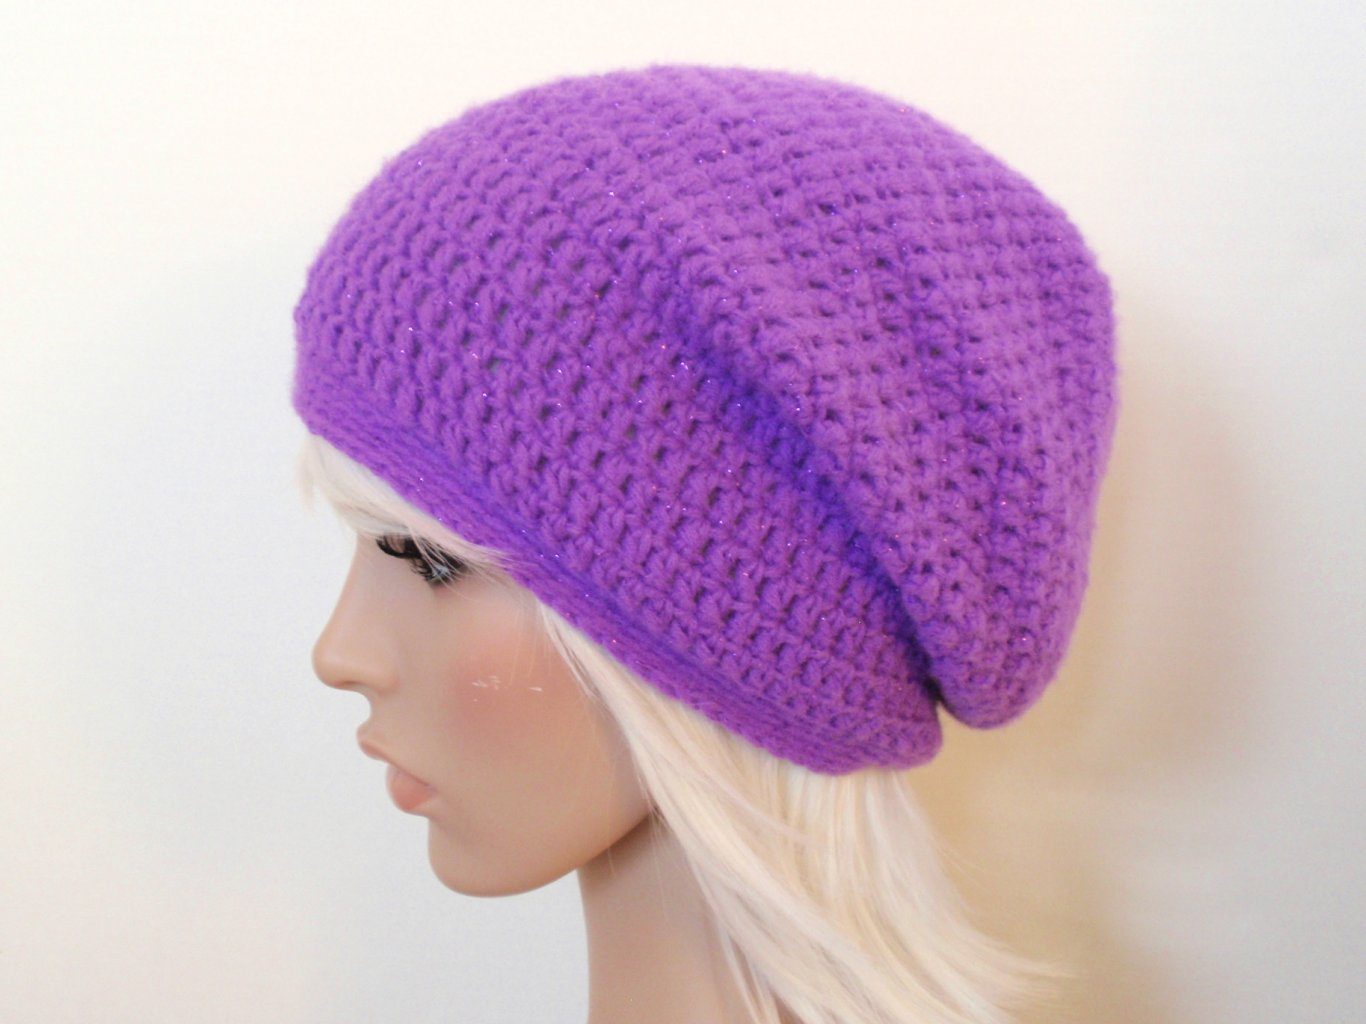 Crochet Hat Patterns Beanie : Beanie Crochet Patterns - My Patterns